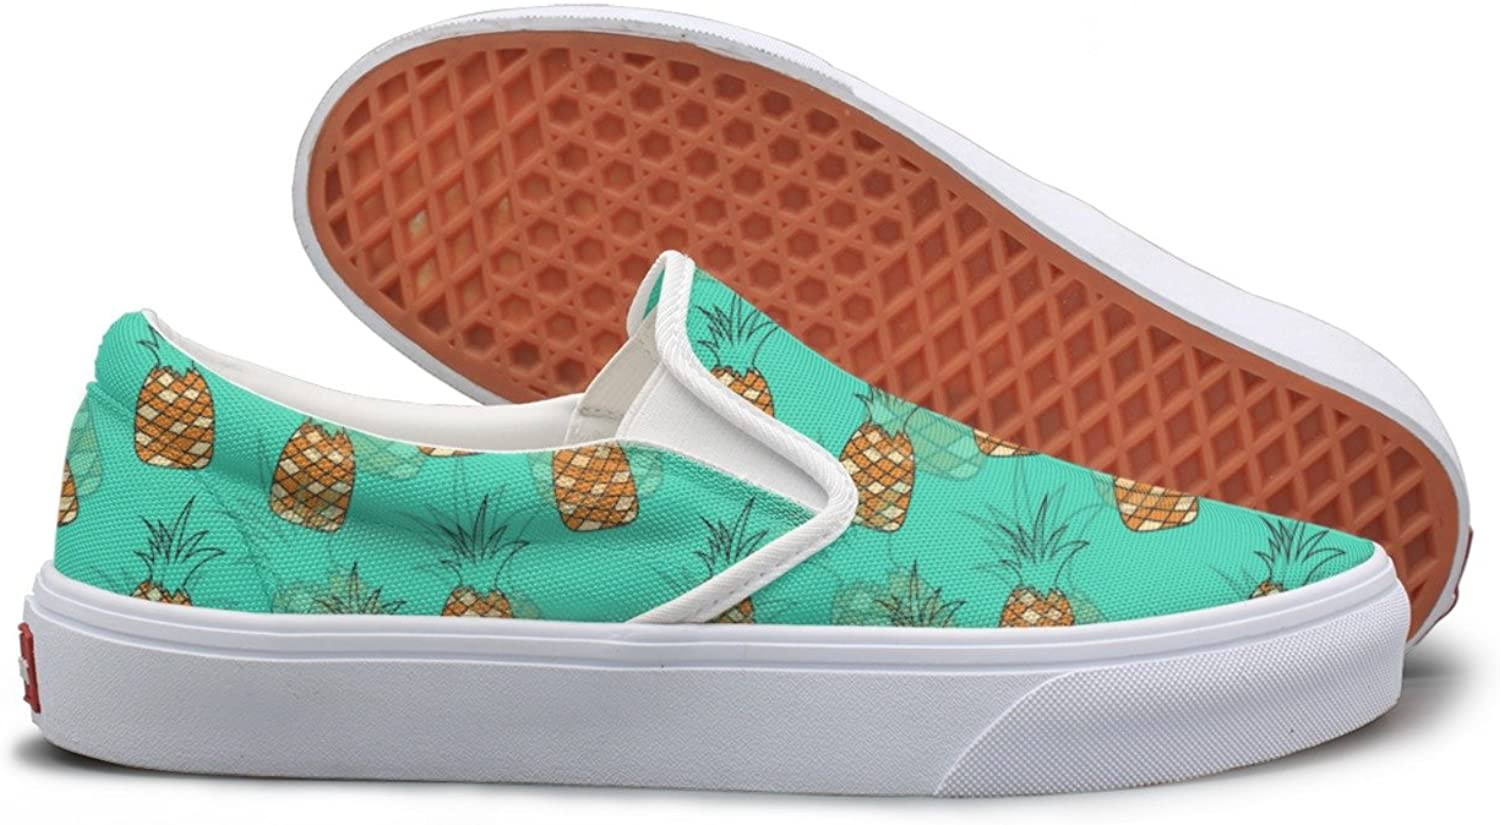 SEERTED Stylish Pineapples bluee Background Fashion Sneakers for Women